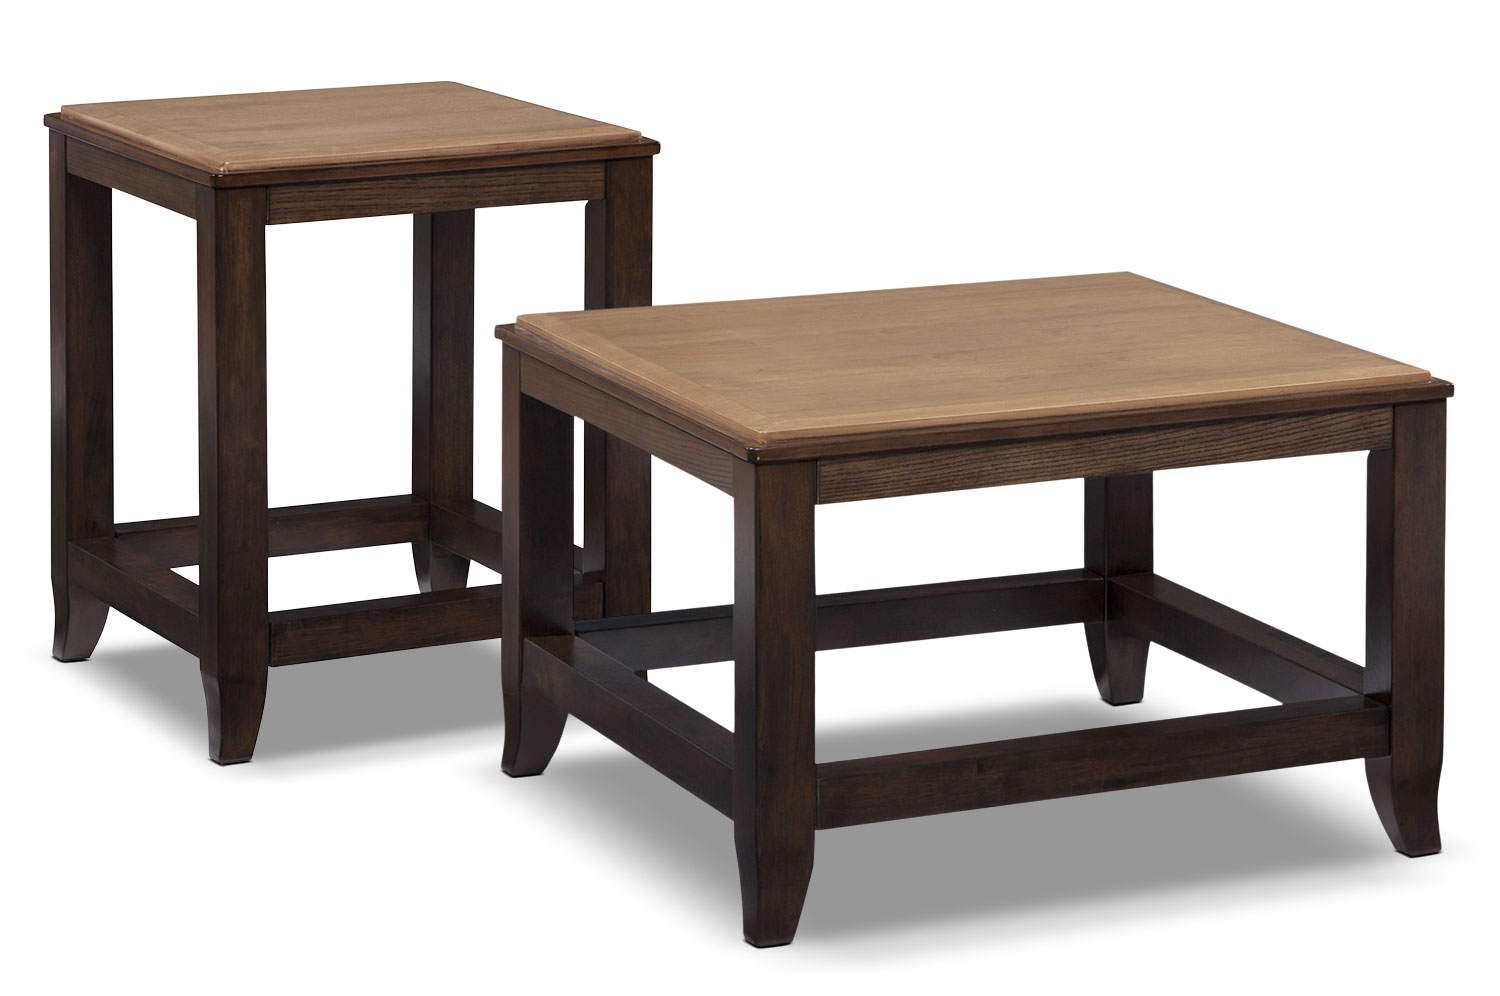 Accent and Occasional Furniture - Oslo 2-Piece Coffee and End Table Package